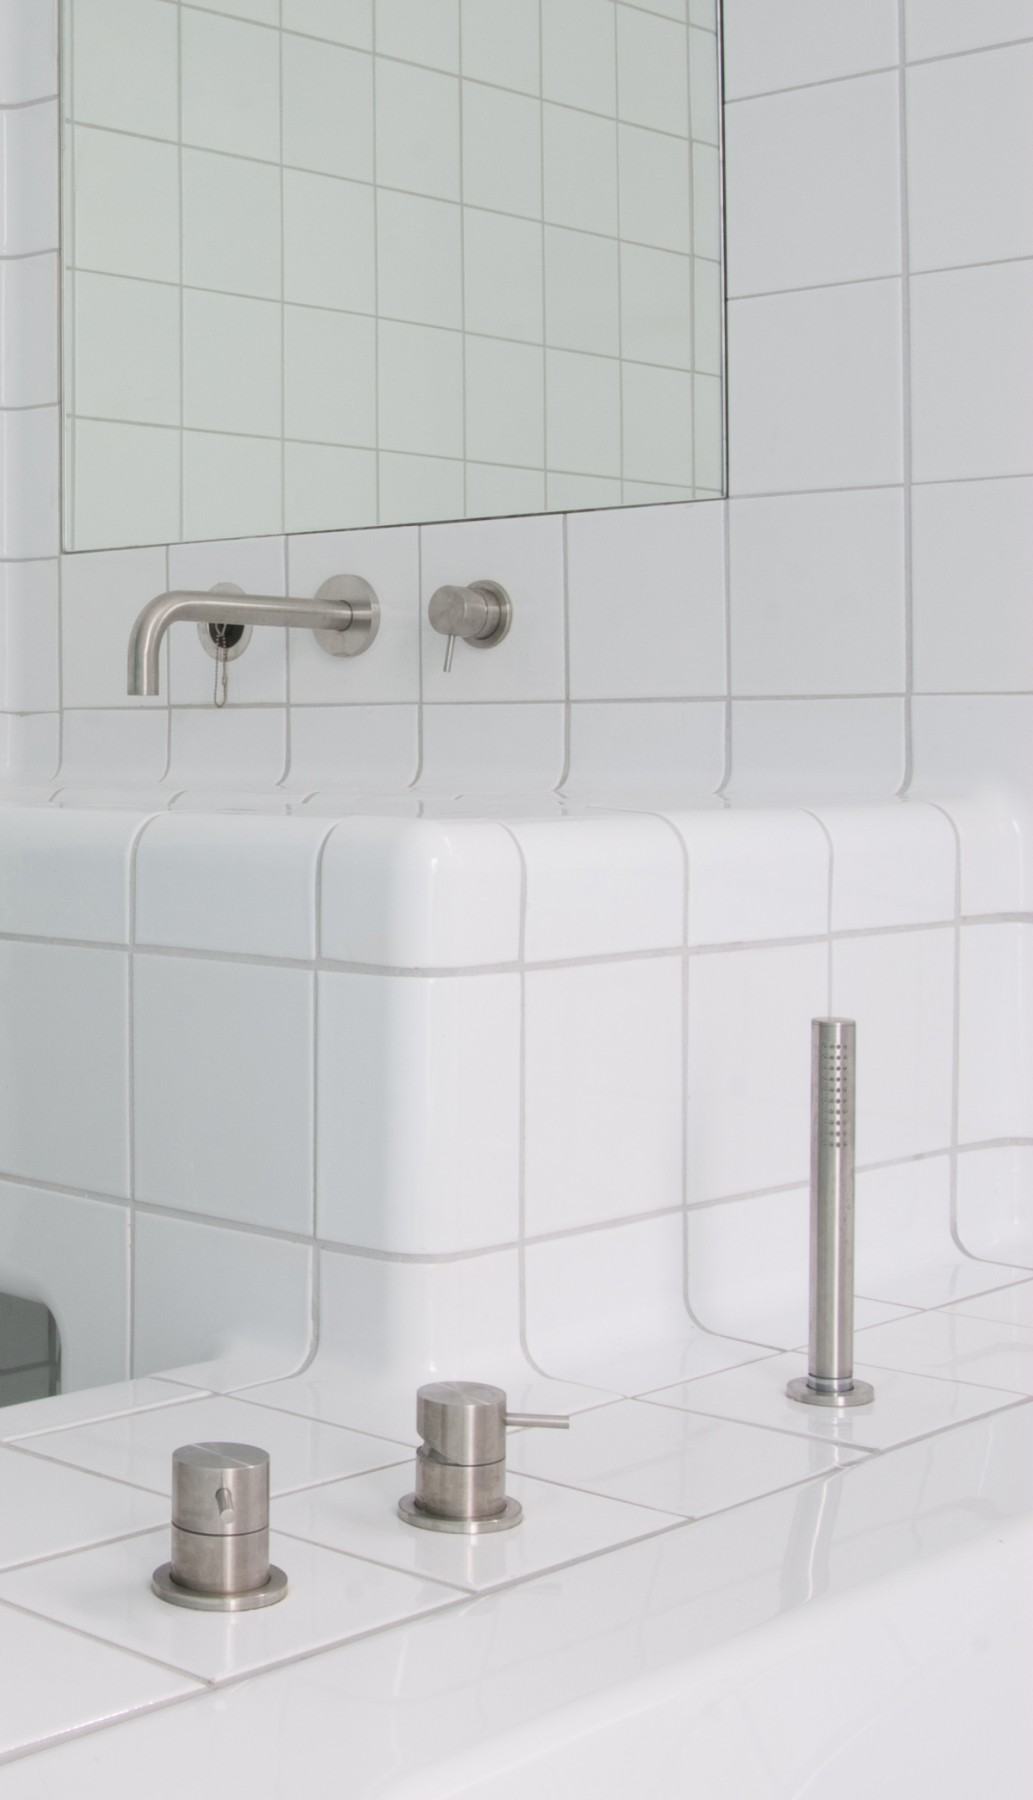 3d tiles with taps, functional and construction modern rounded tiles available in multiple colors